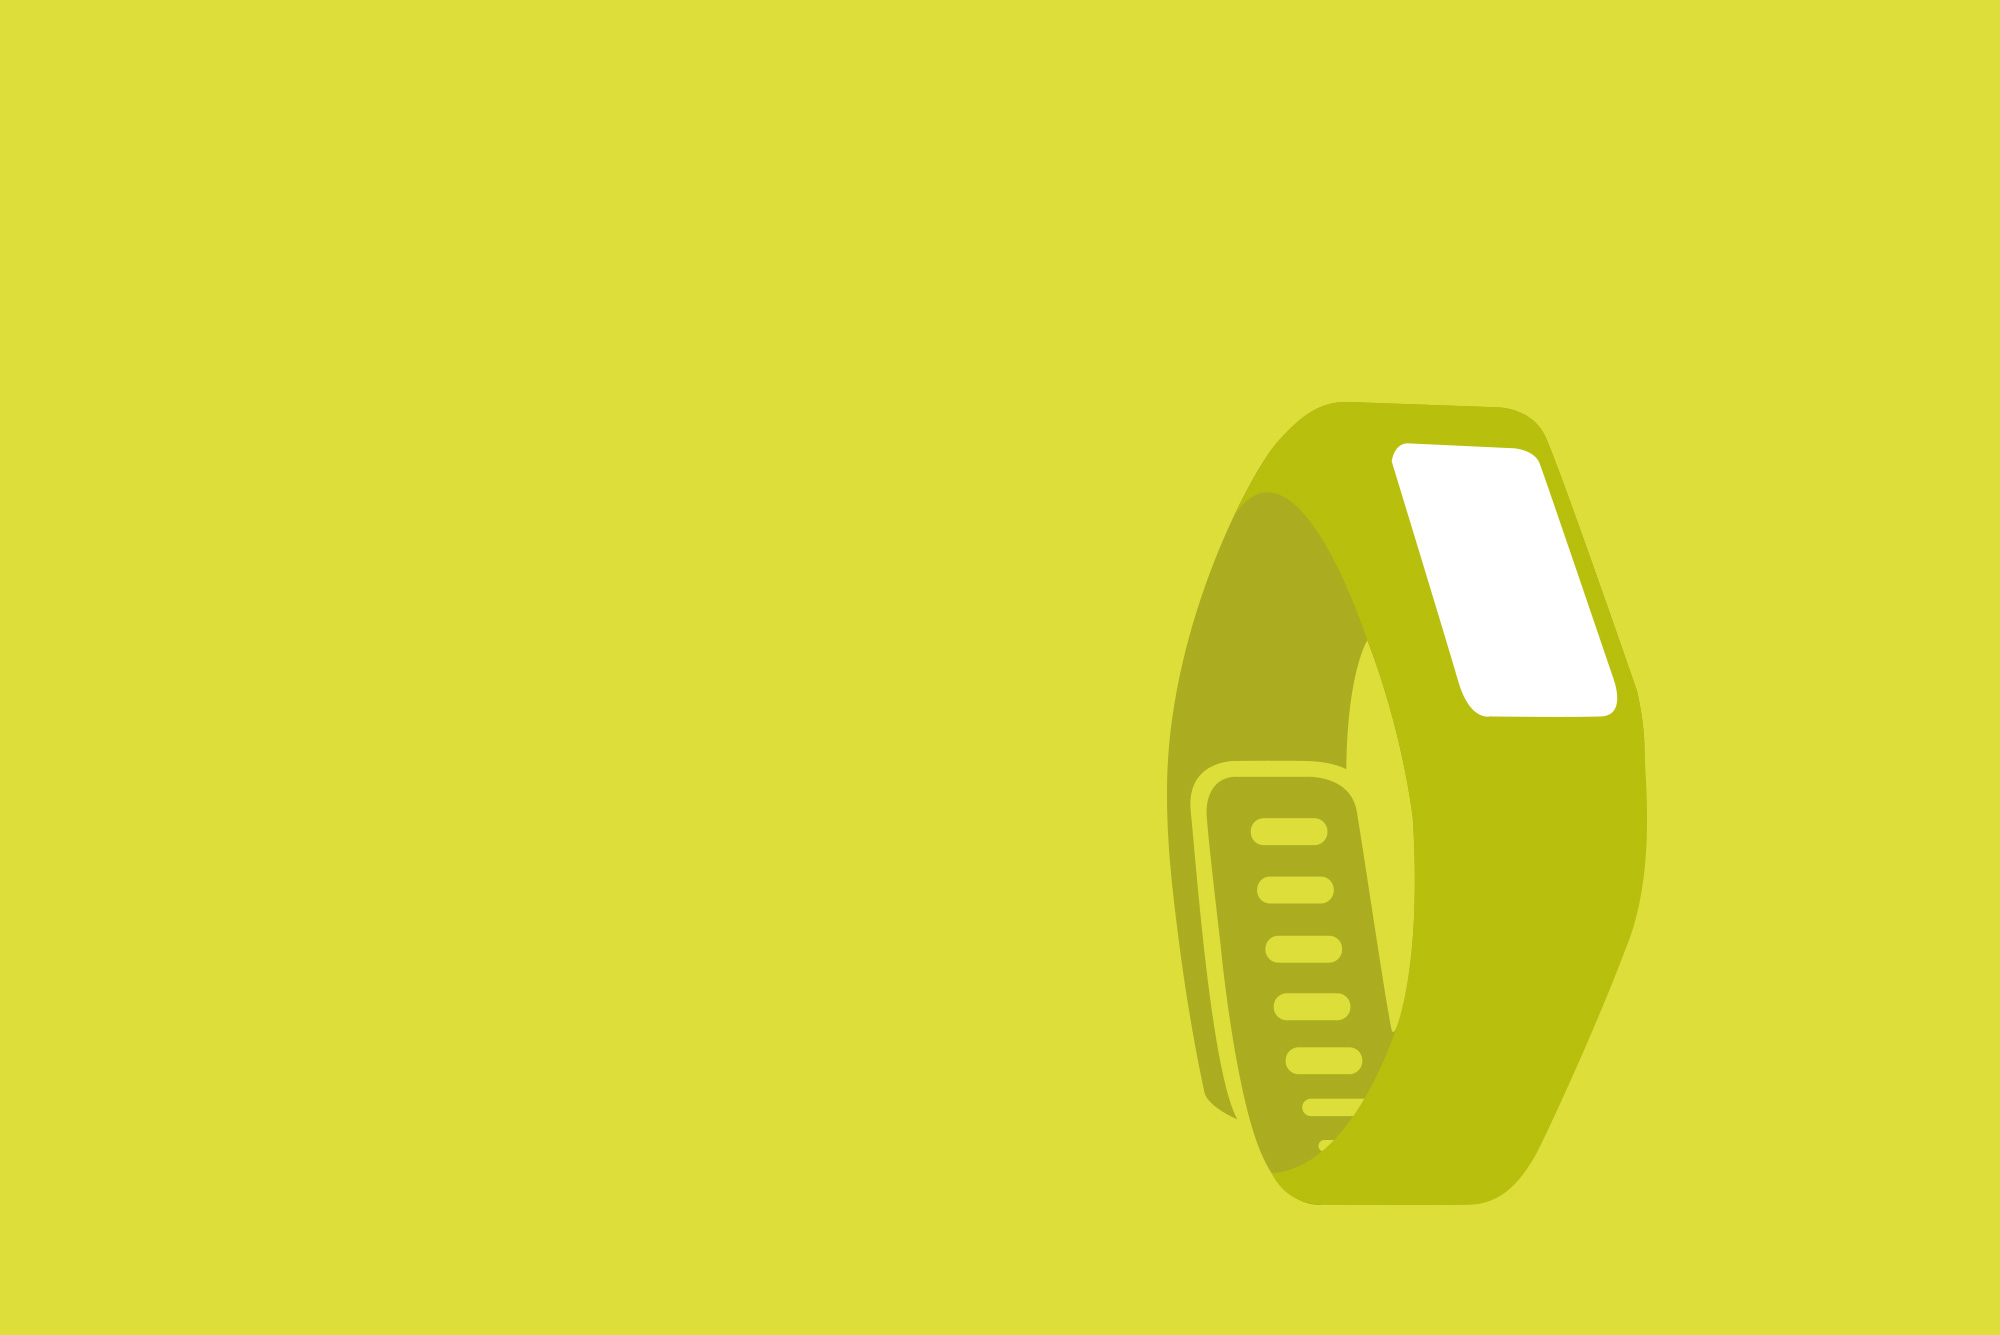 Smart watch on yellow background - Wearable tech